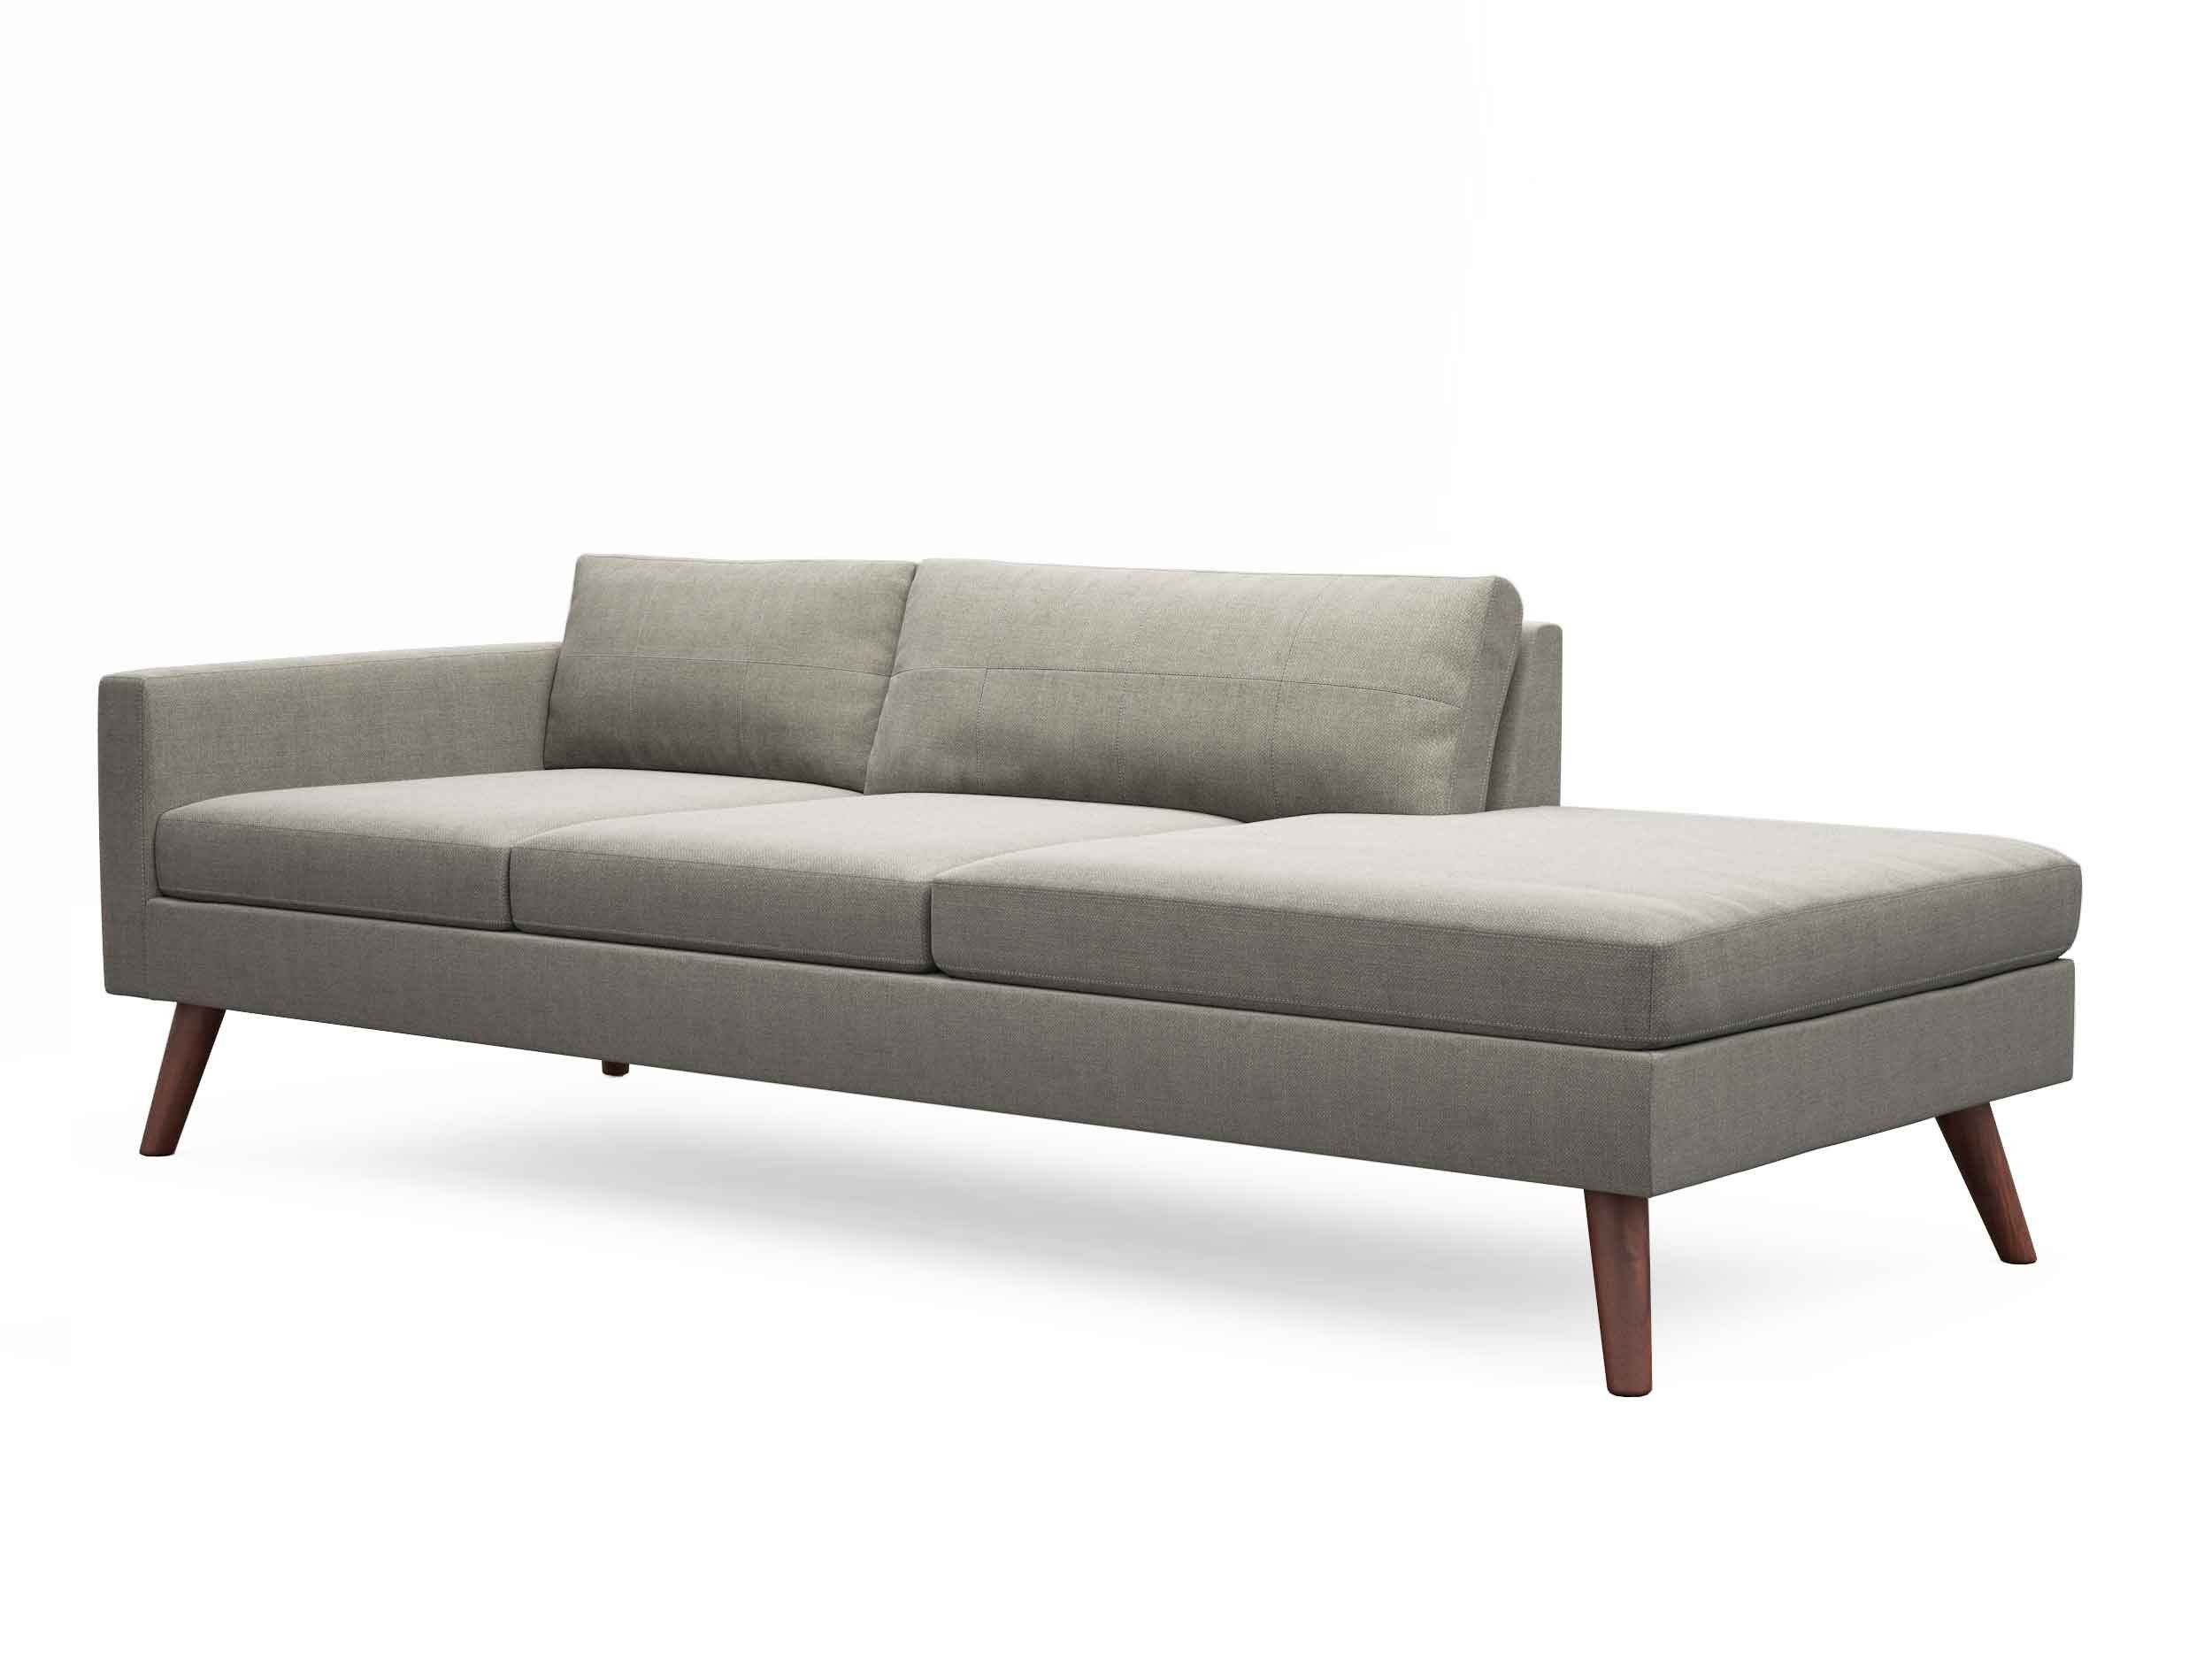 Chaise sofa - Minimalist Left Arm Chaise In White Sofa Leather Finishing Completed Concrete Arm Rest Also